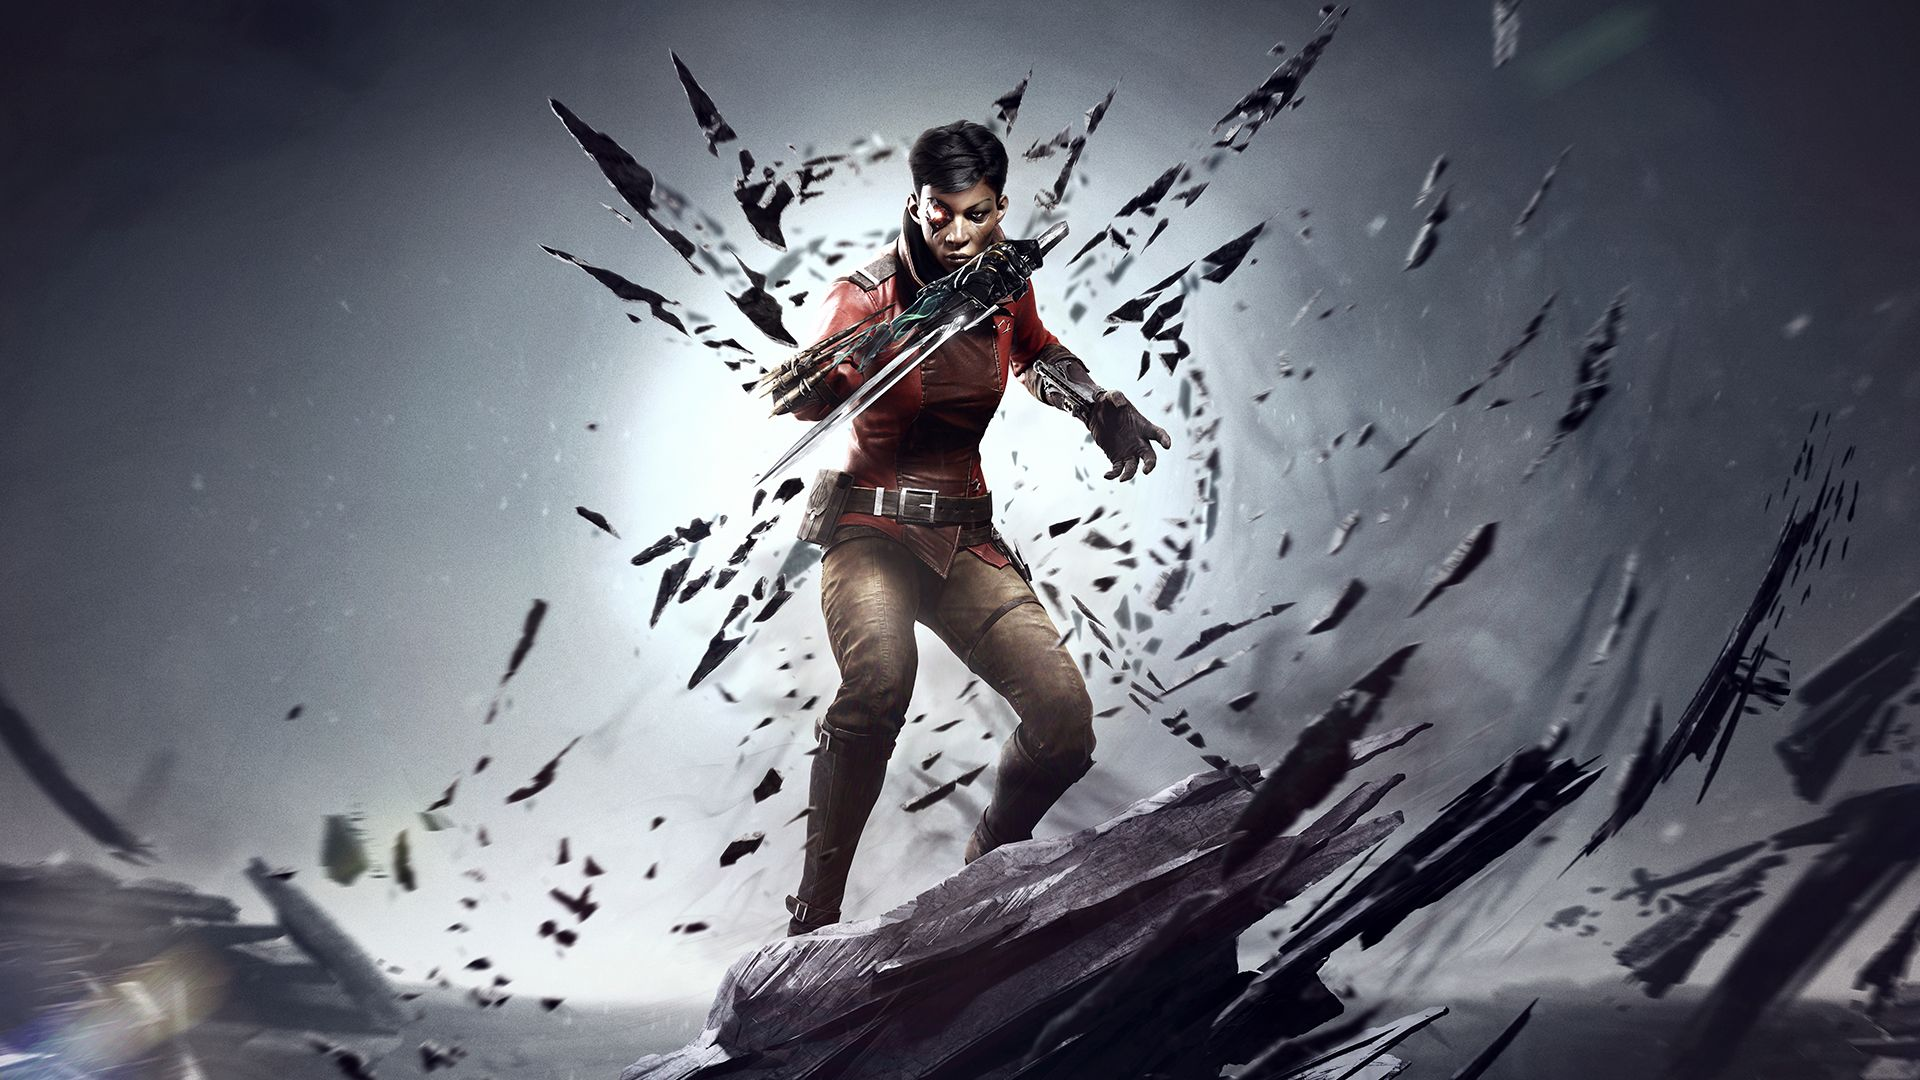 Dishonored: Death of the Outsider - Sep 15